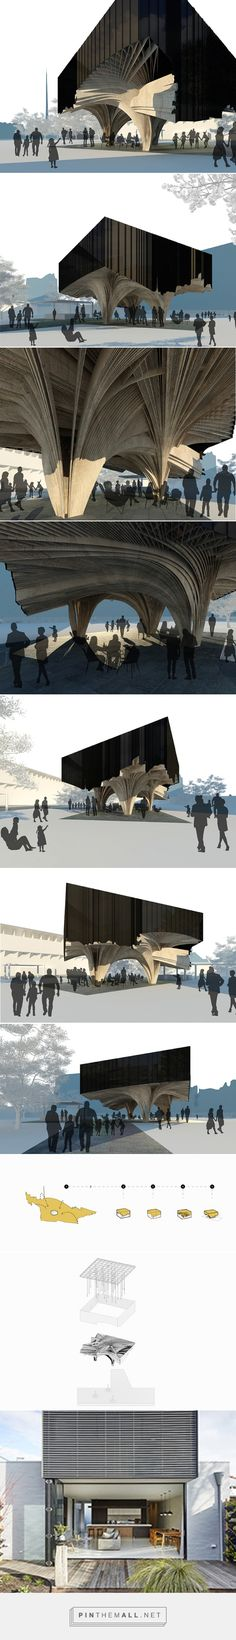 NAAU studio utilizes geography to formulate garden pavilion concept - created via https://pinthemall.net